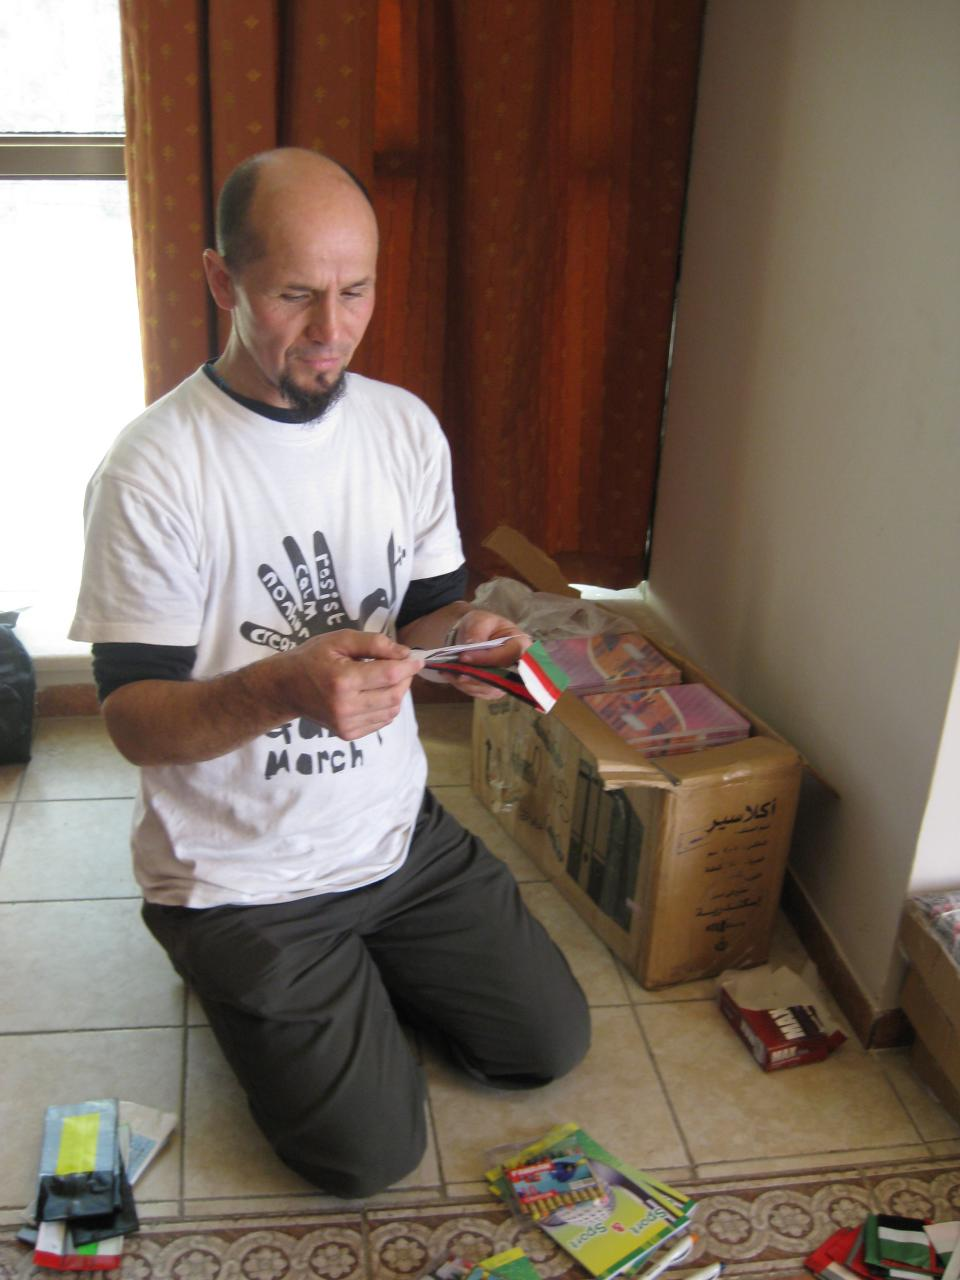 Les reads messages from American kids to kids in Gaza while preparing backpacks of supplies for delivery